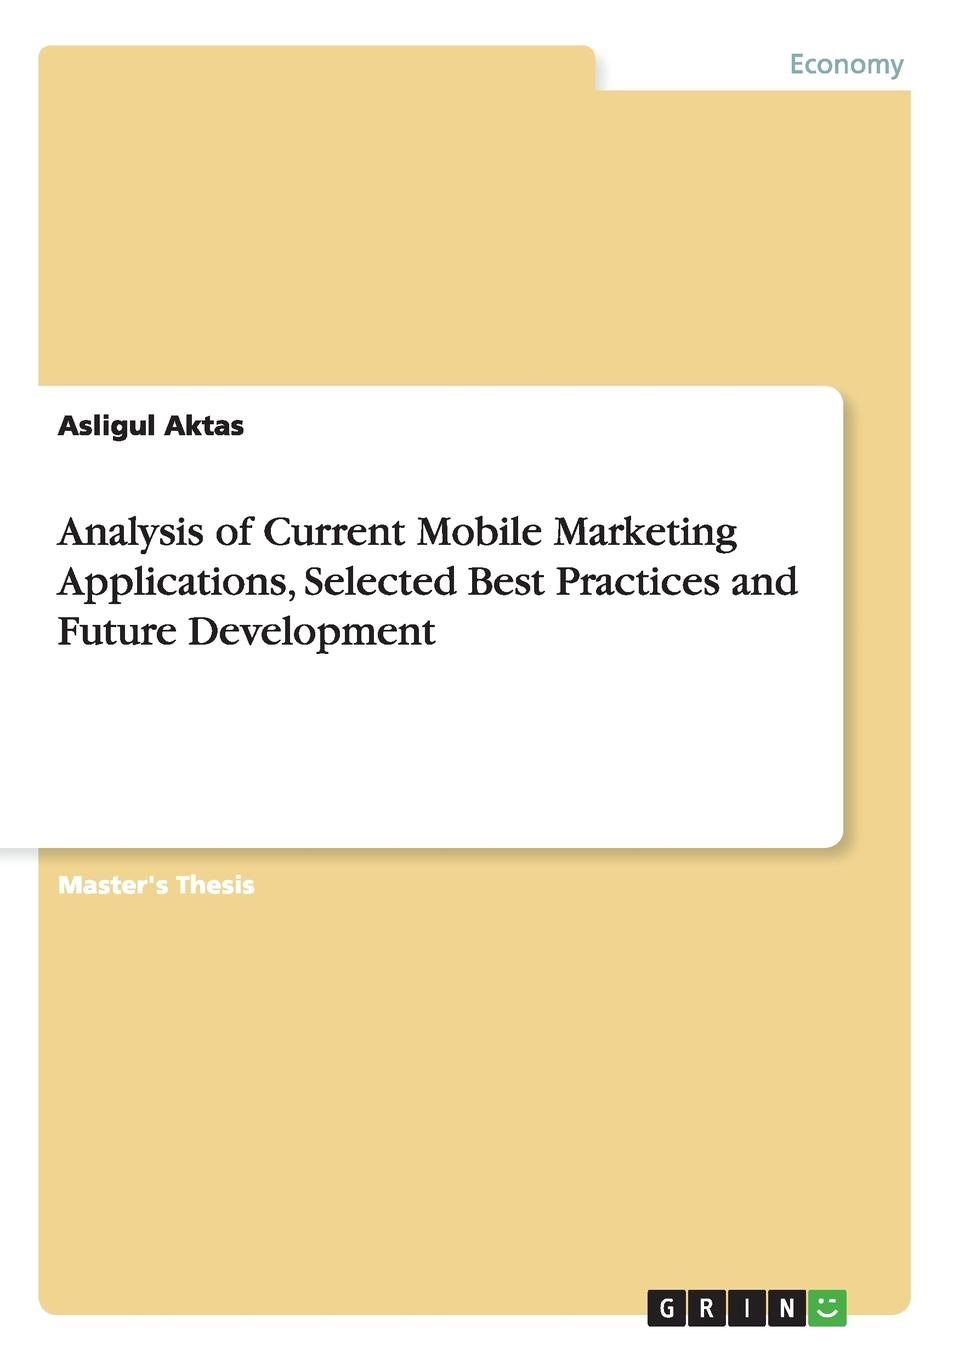 Asligul Aktas Analysis of Current Mobile Marketing Applications, Selected Best Practices and Future Development